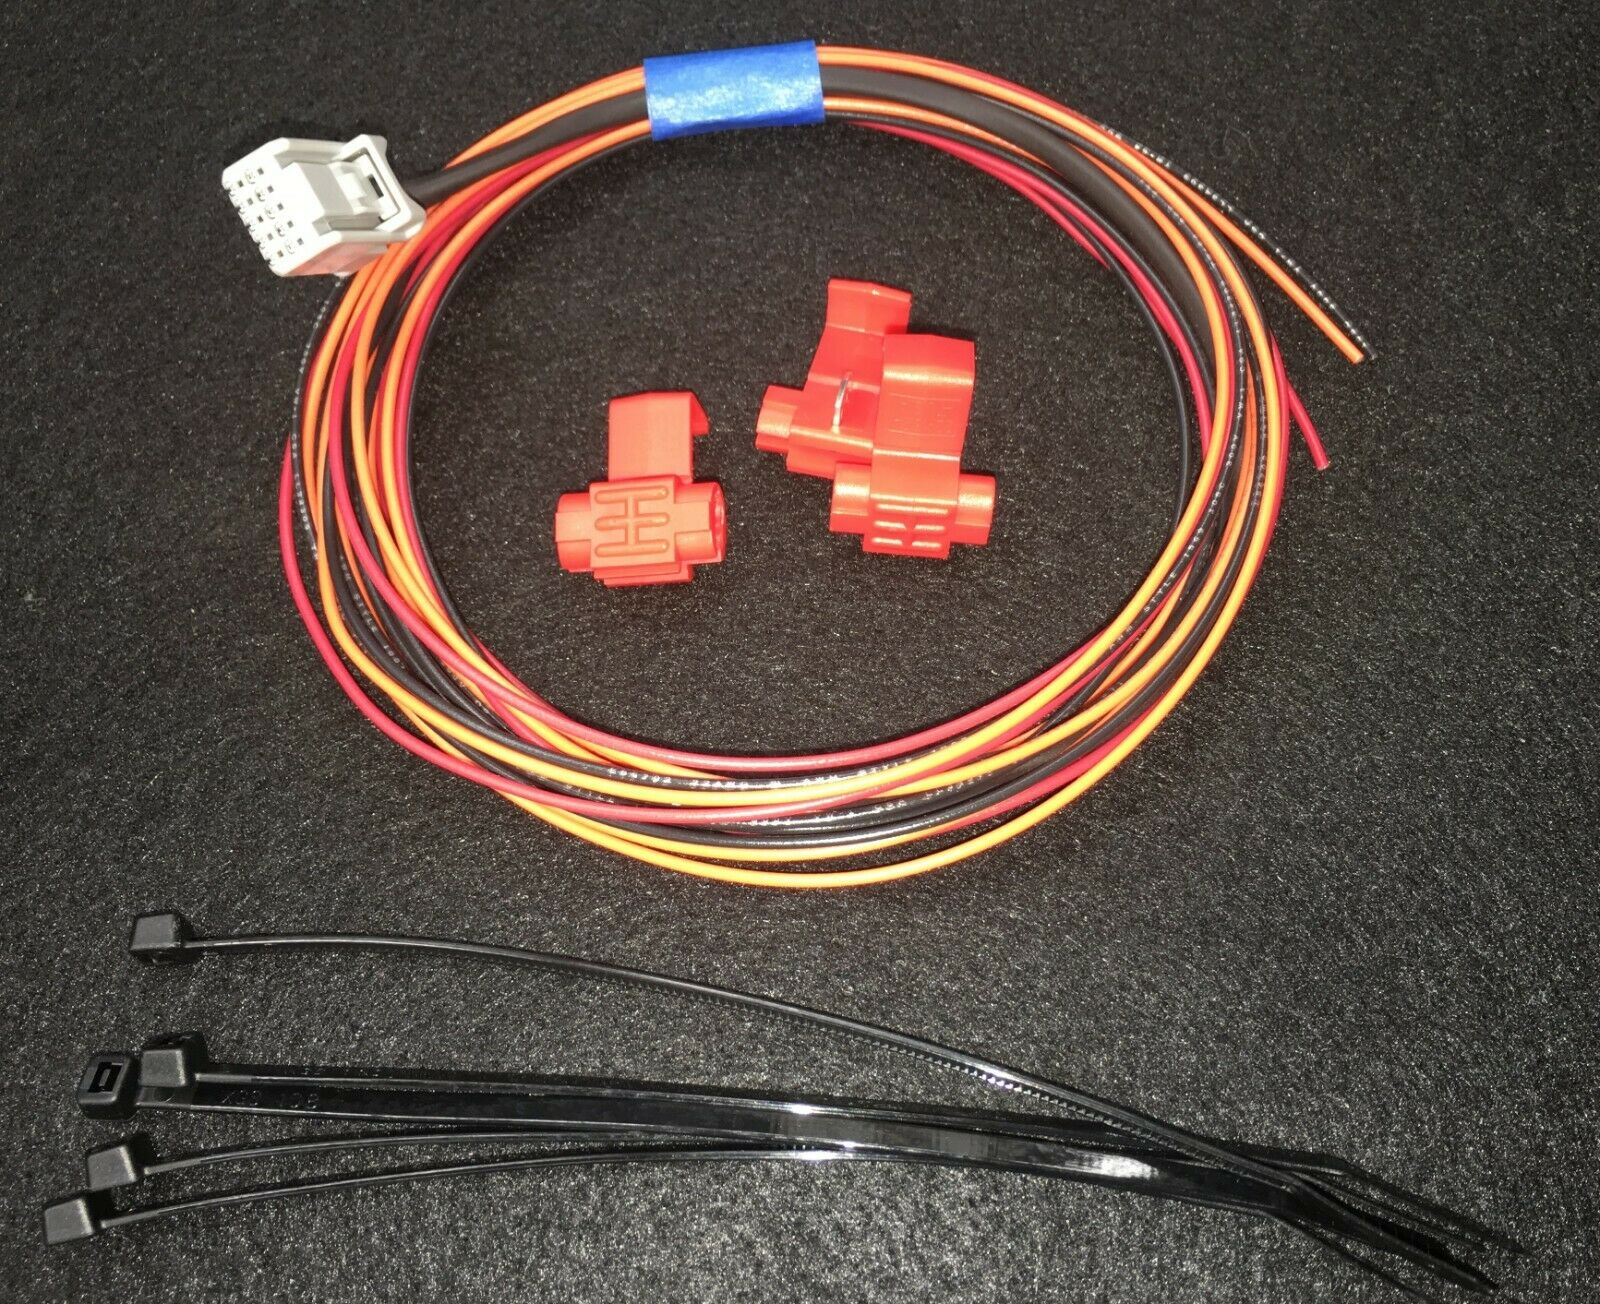 hight resolution of 10 pin gentex gntx 536 1124 homelink compass homelink mirror wiring kit new for sale